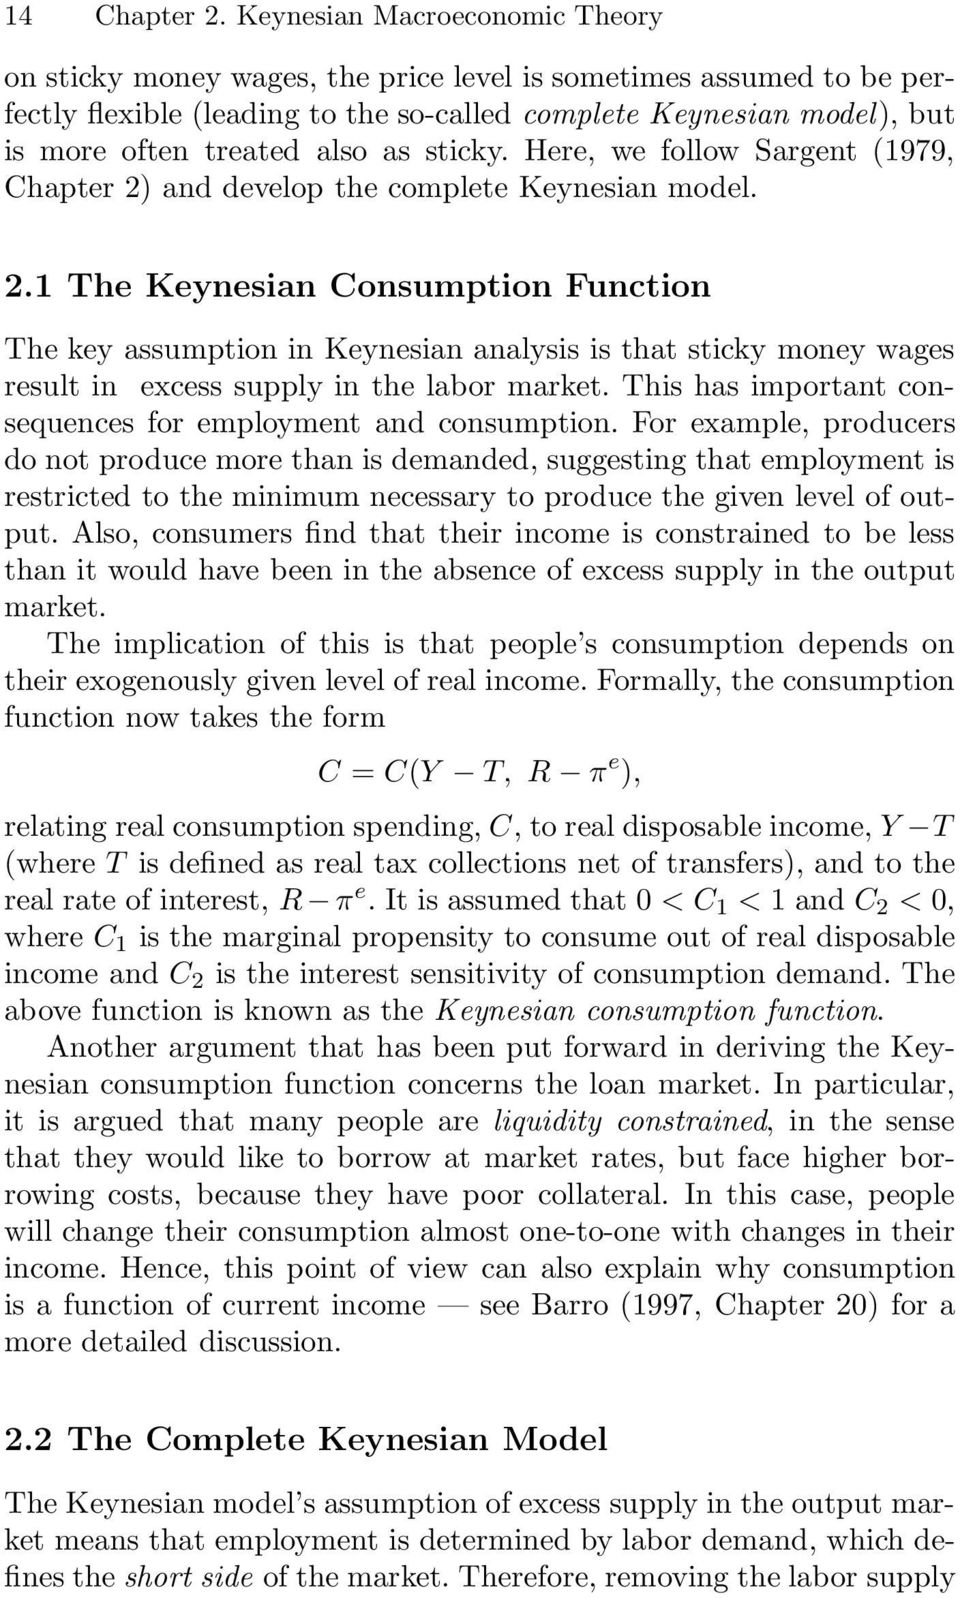 as sticky. Here, we follow Sargent 1979, Chapter 2 and develop the complete Keynesian model. 2.1 The Keynesian Consumption Function The key assumption in Keynesian analysis is that sticky money wages result in excess supply in the labor market.